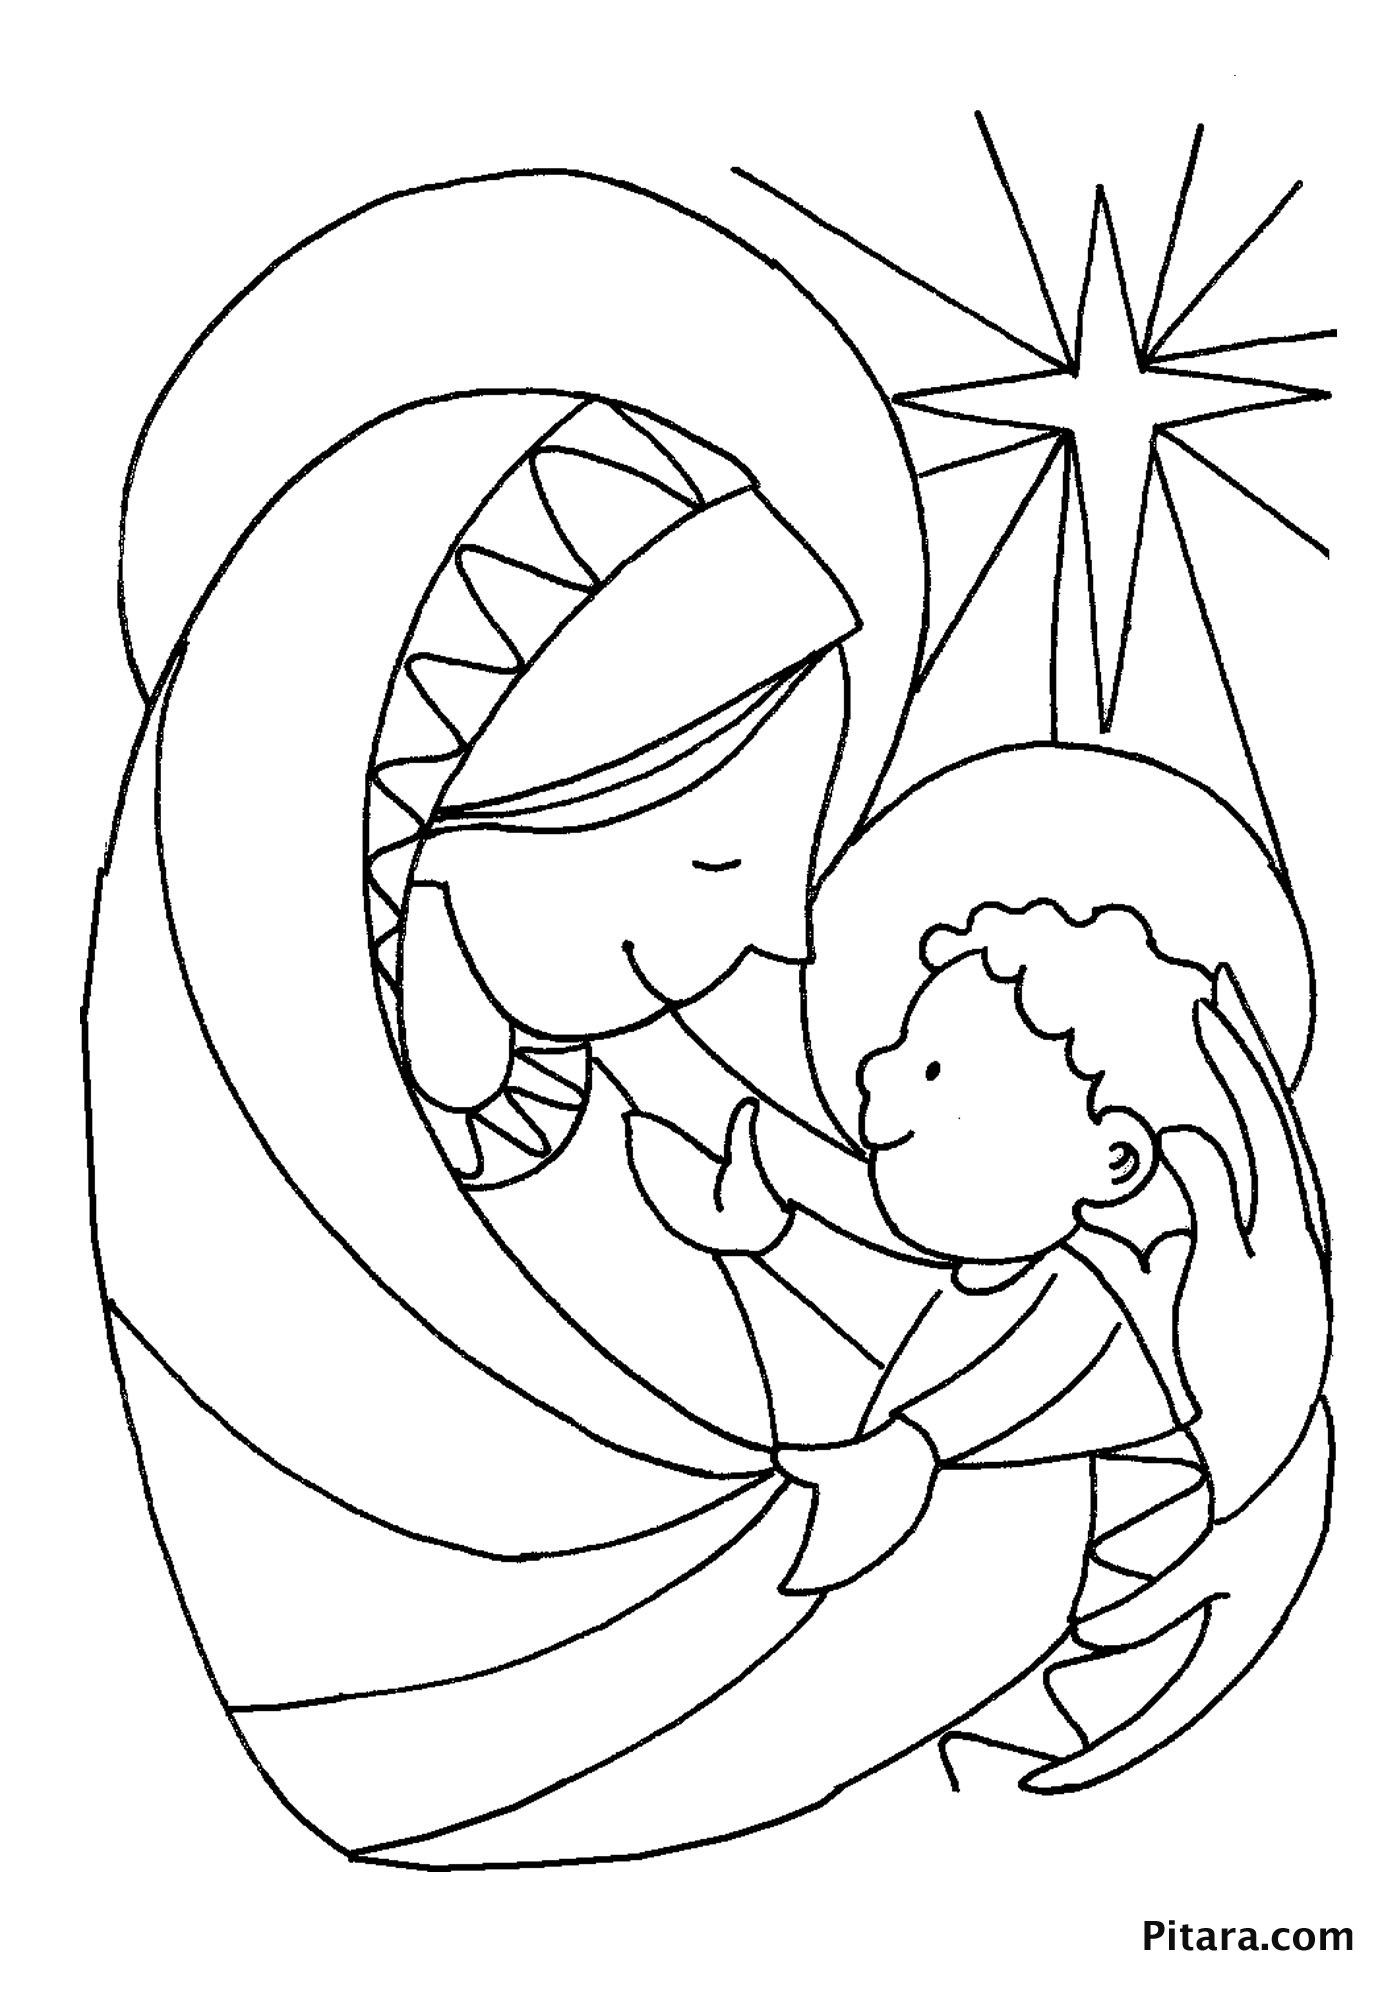 mary and jesus coloring page mary baby jesus coloring page pitara kids network page and coloring jesus mary